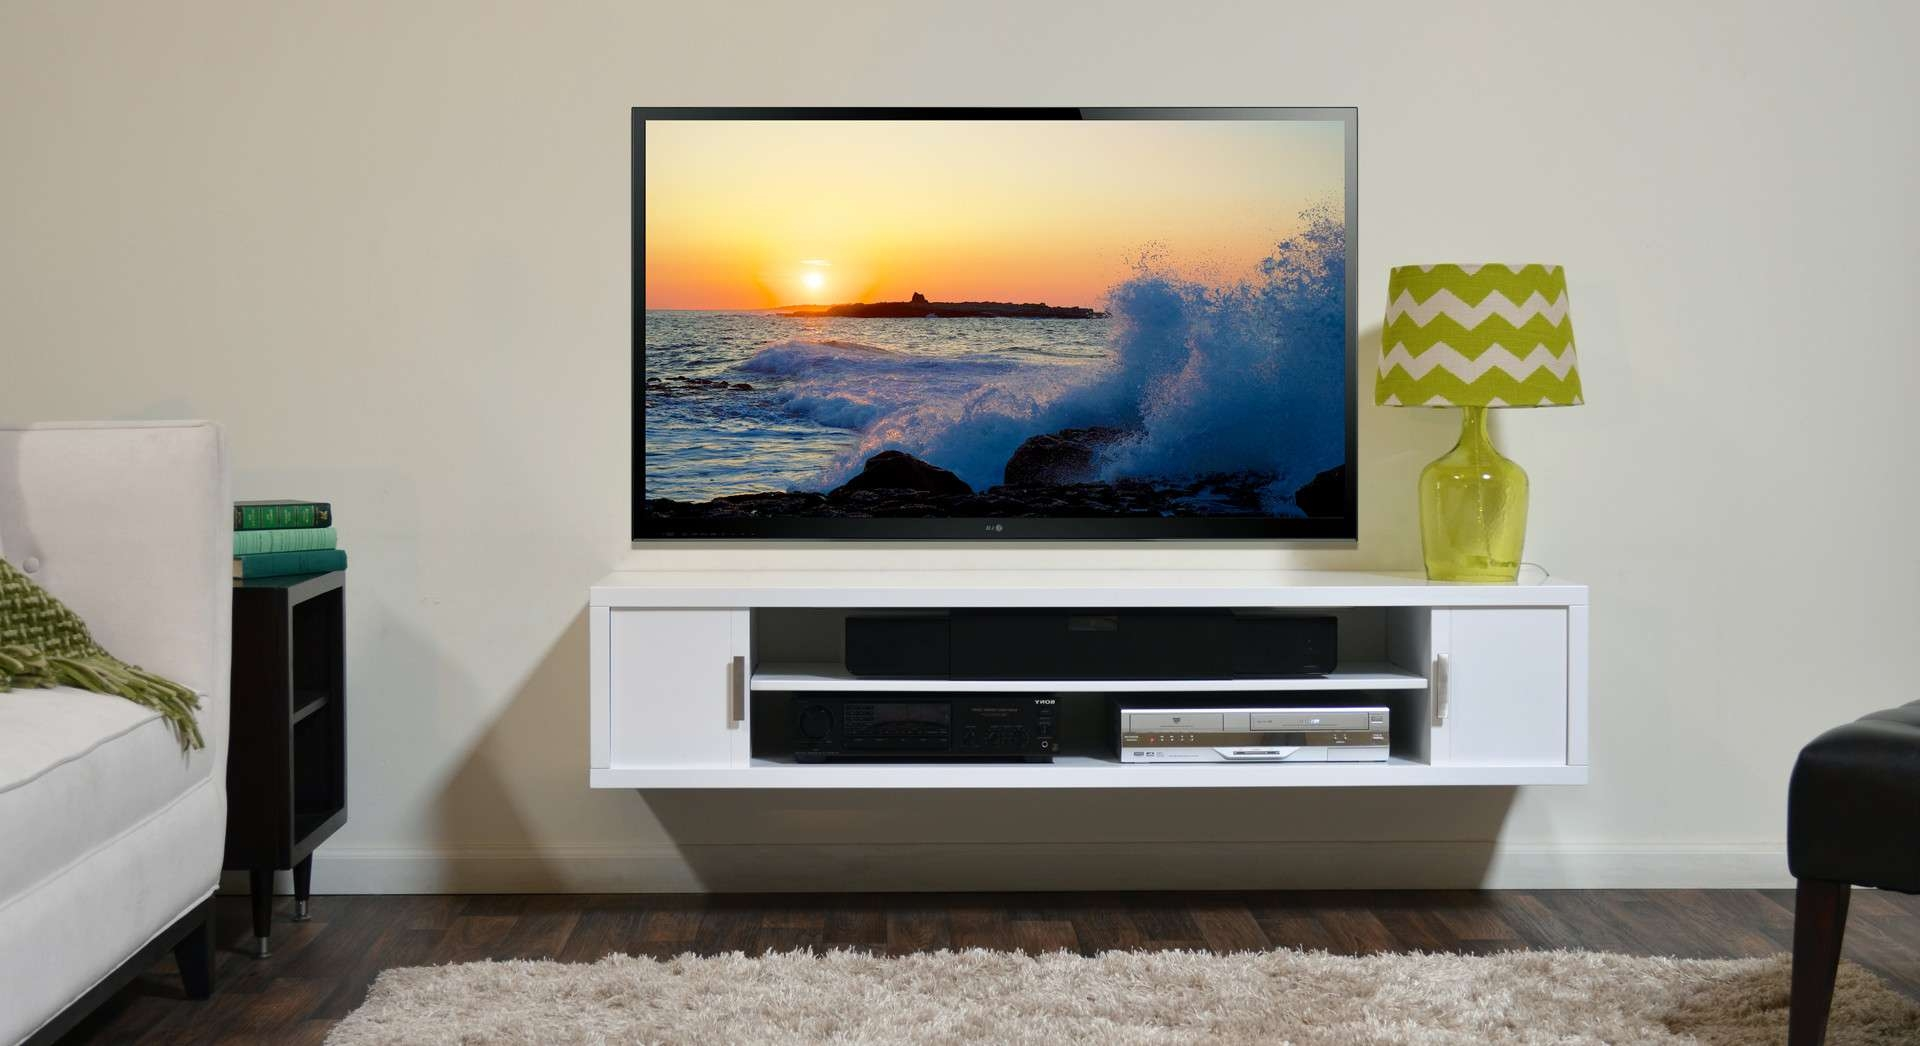 Decoration : 32 Tv Wall Mount Tv Wall Bracket With Dvd Shelf Pertaining To Wall Mounted Under Tv Cabinets (View 6 of 20)